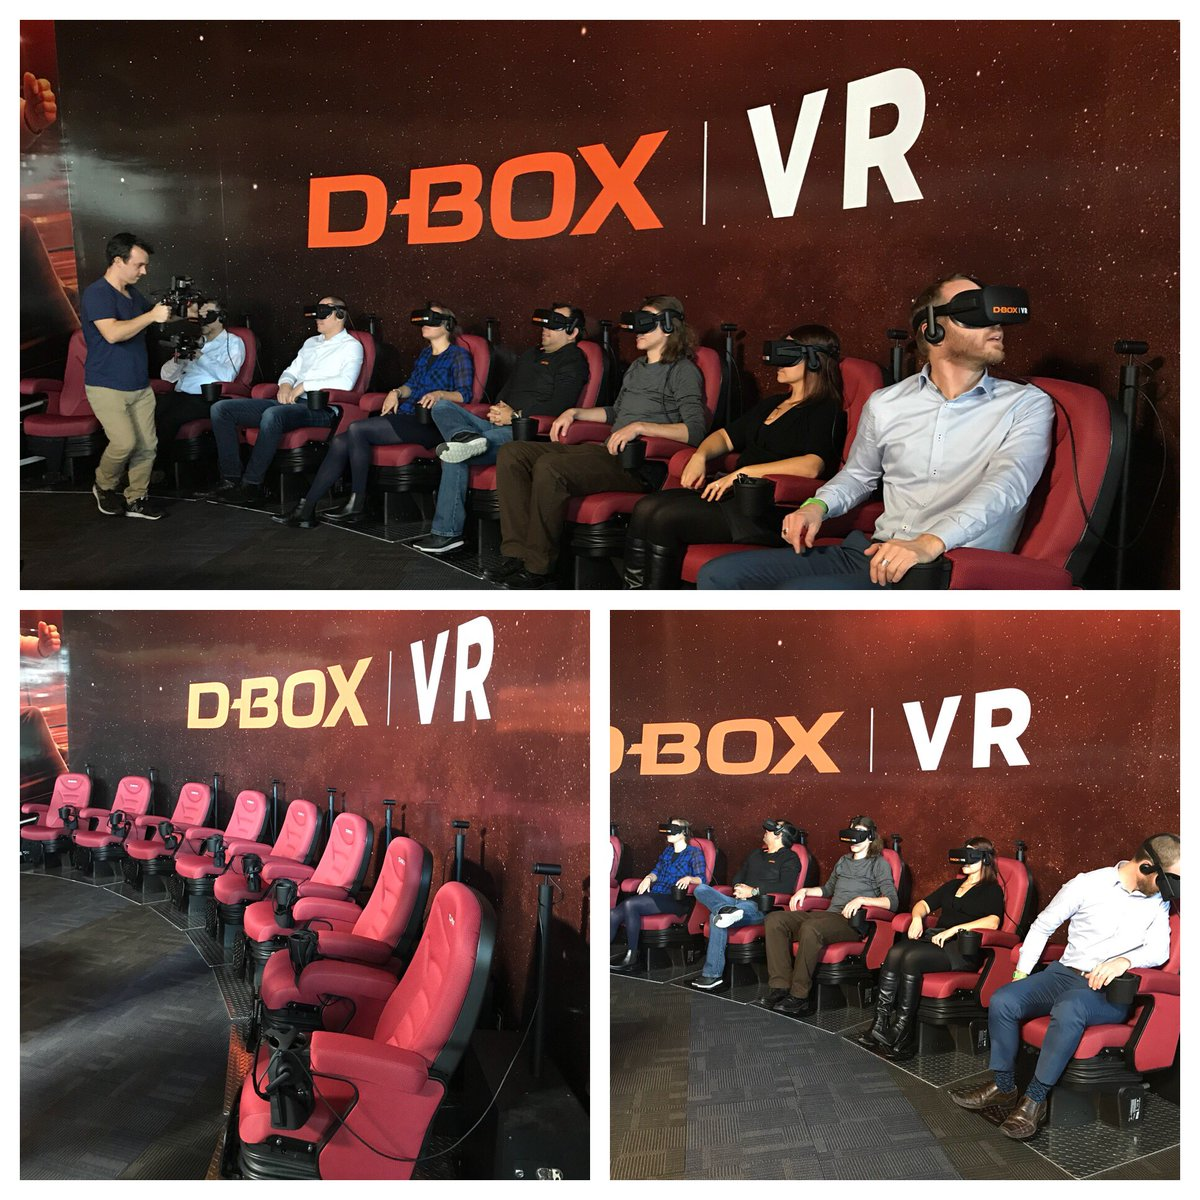 test Twitter Media - D-BOX VR is opening today, must try Raising a Rukus created by @VRcompany presented @CineplexMovies https://t.co/uJYTYuvW21